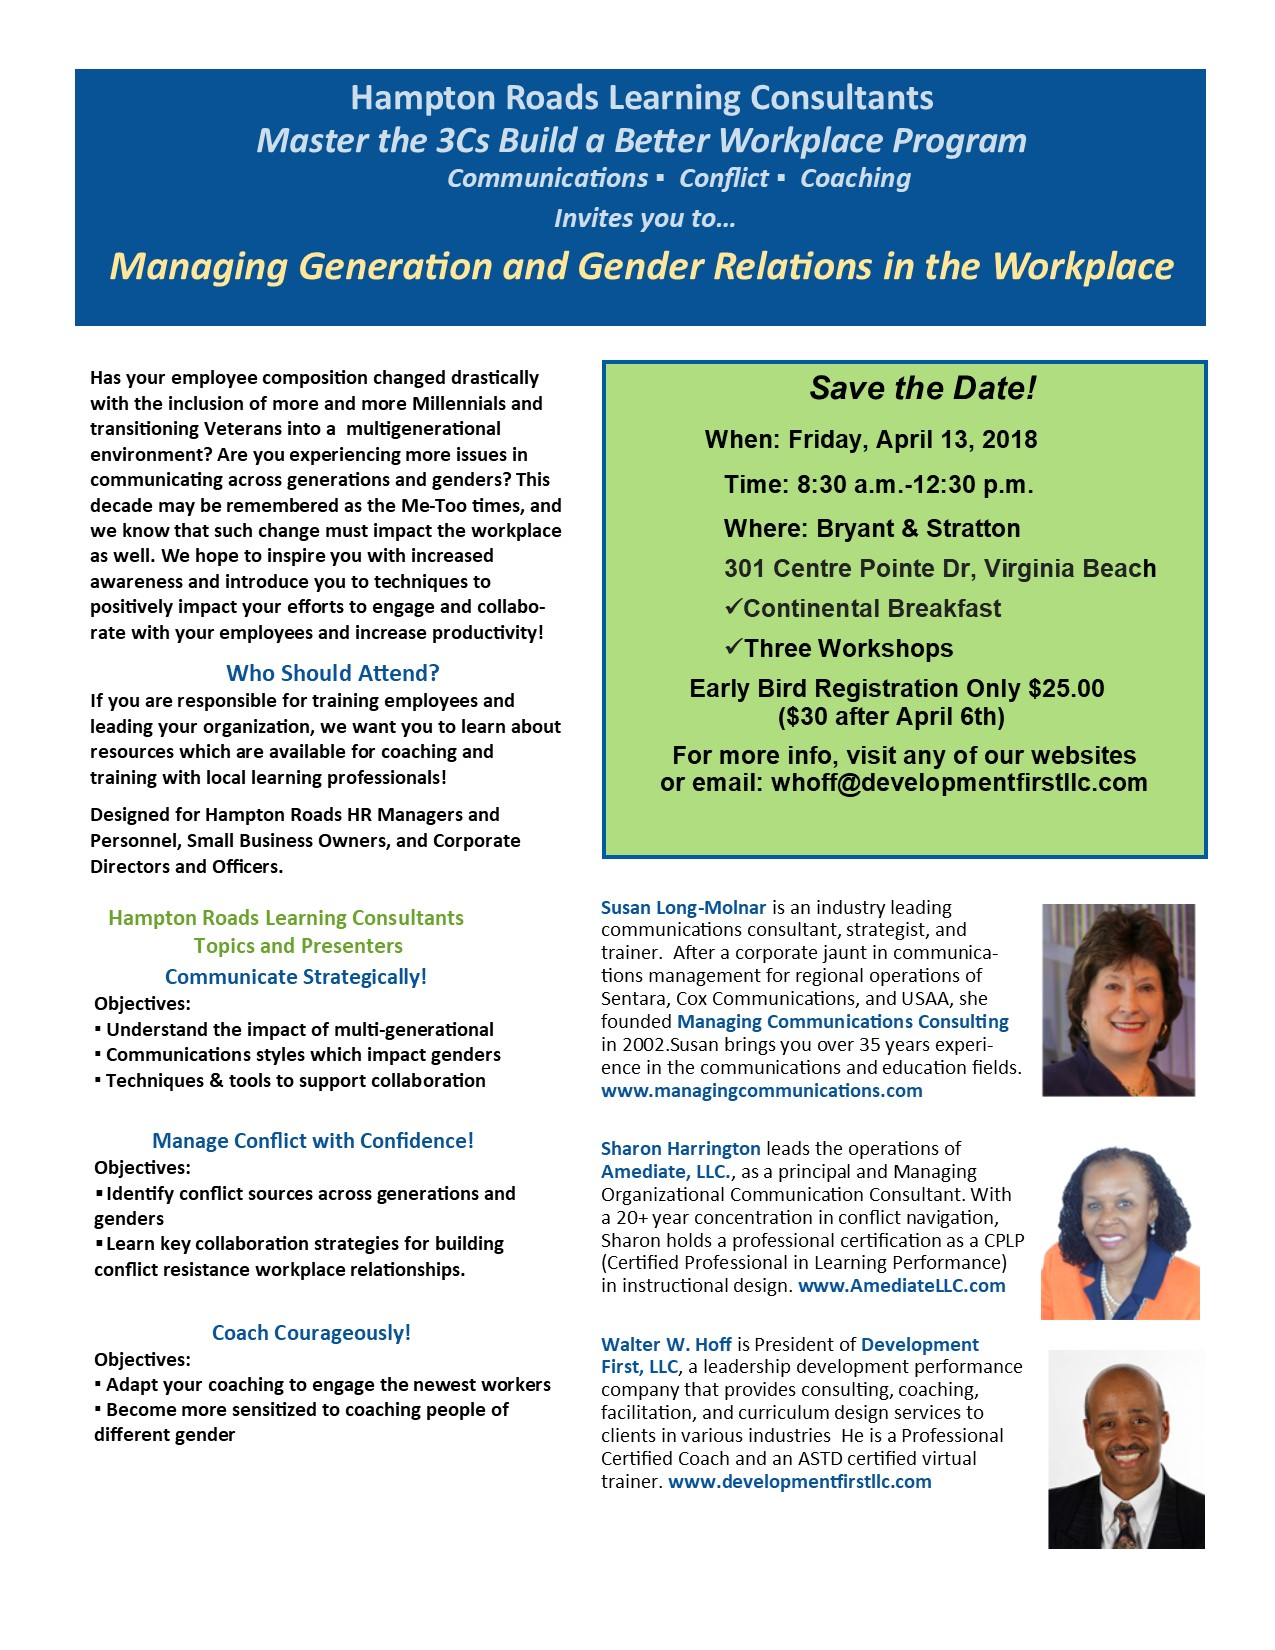 Managing Generation and Gender Relations in the Workplace